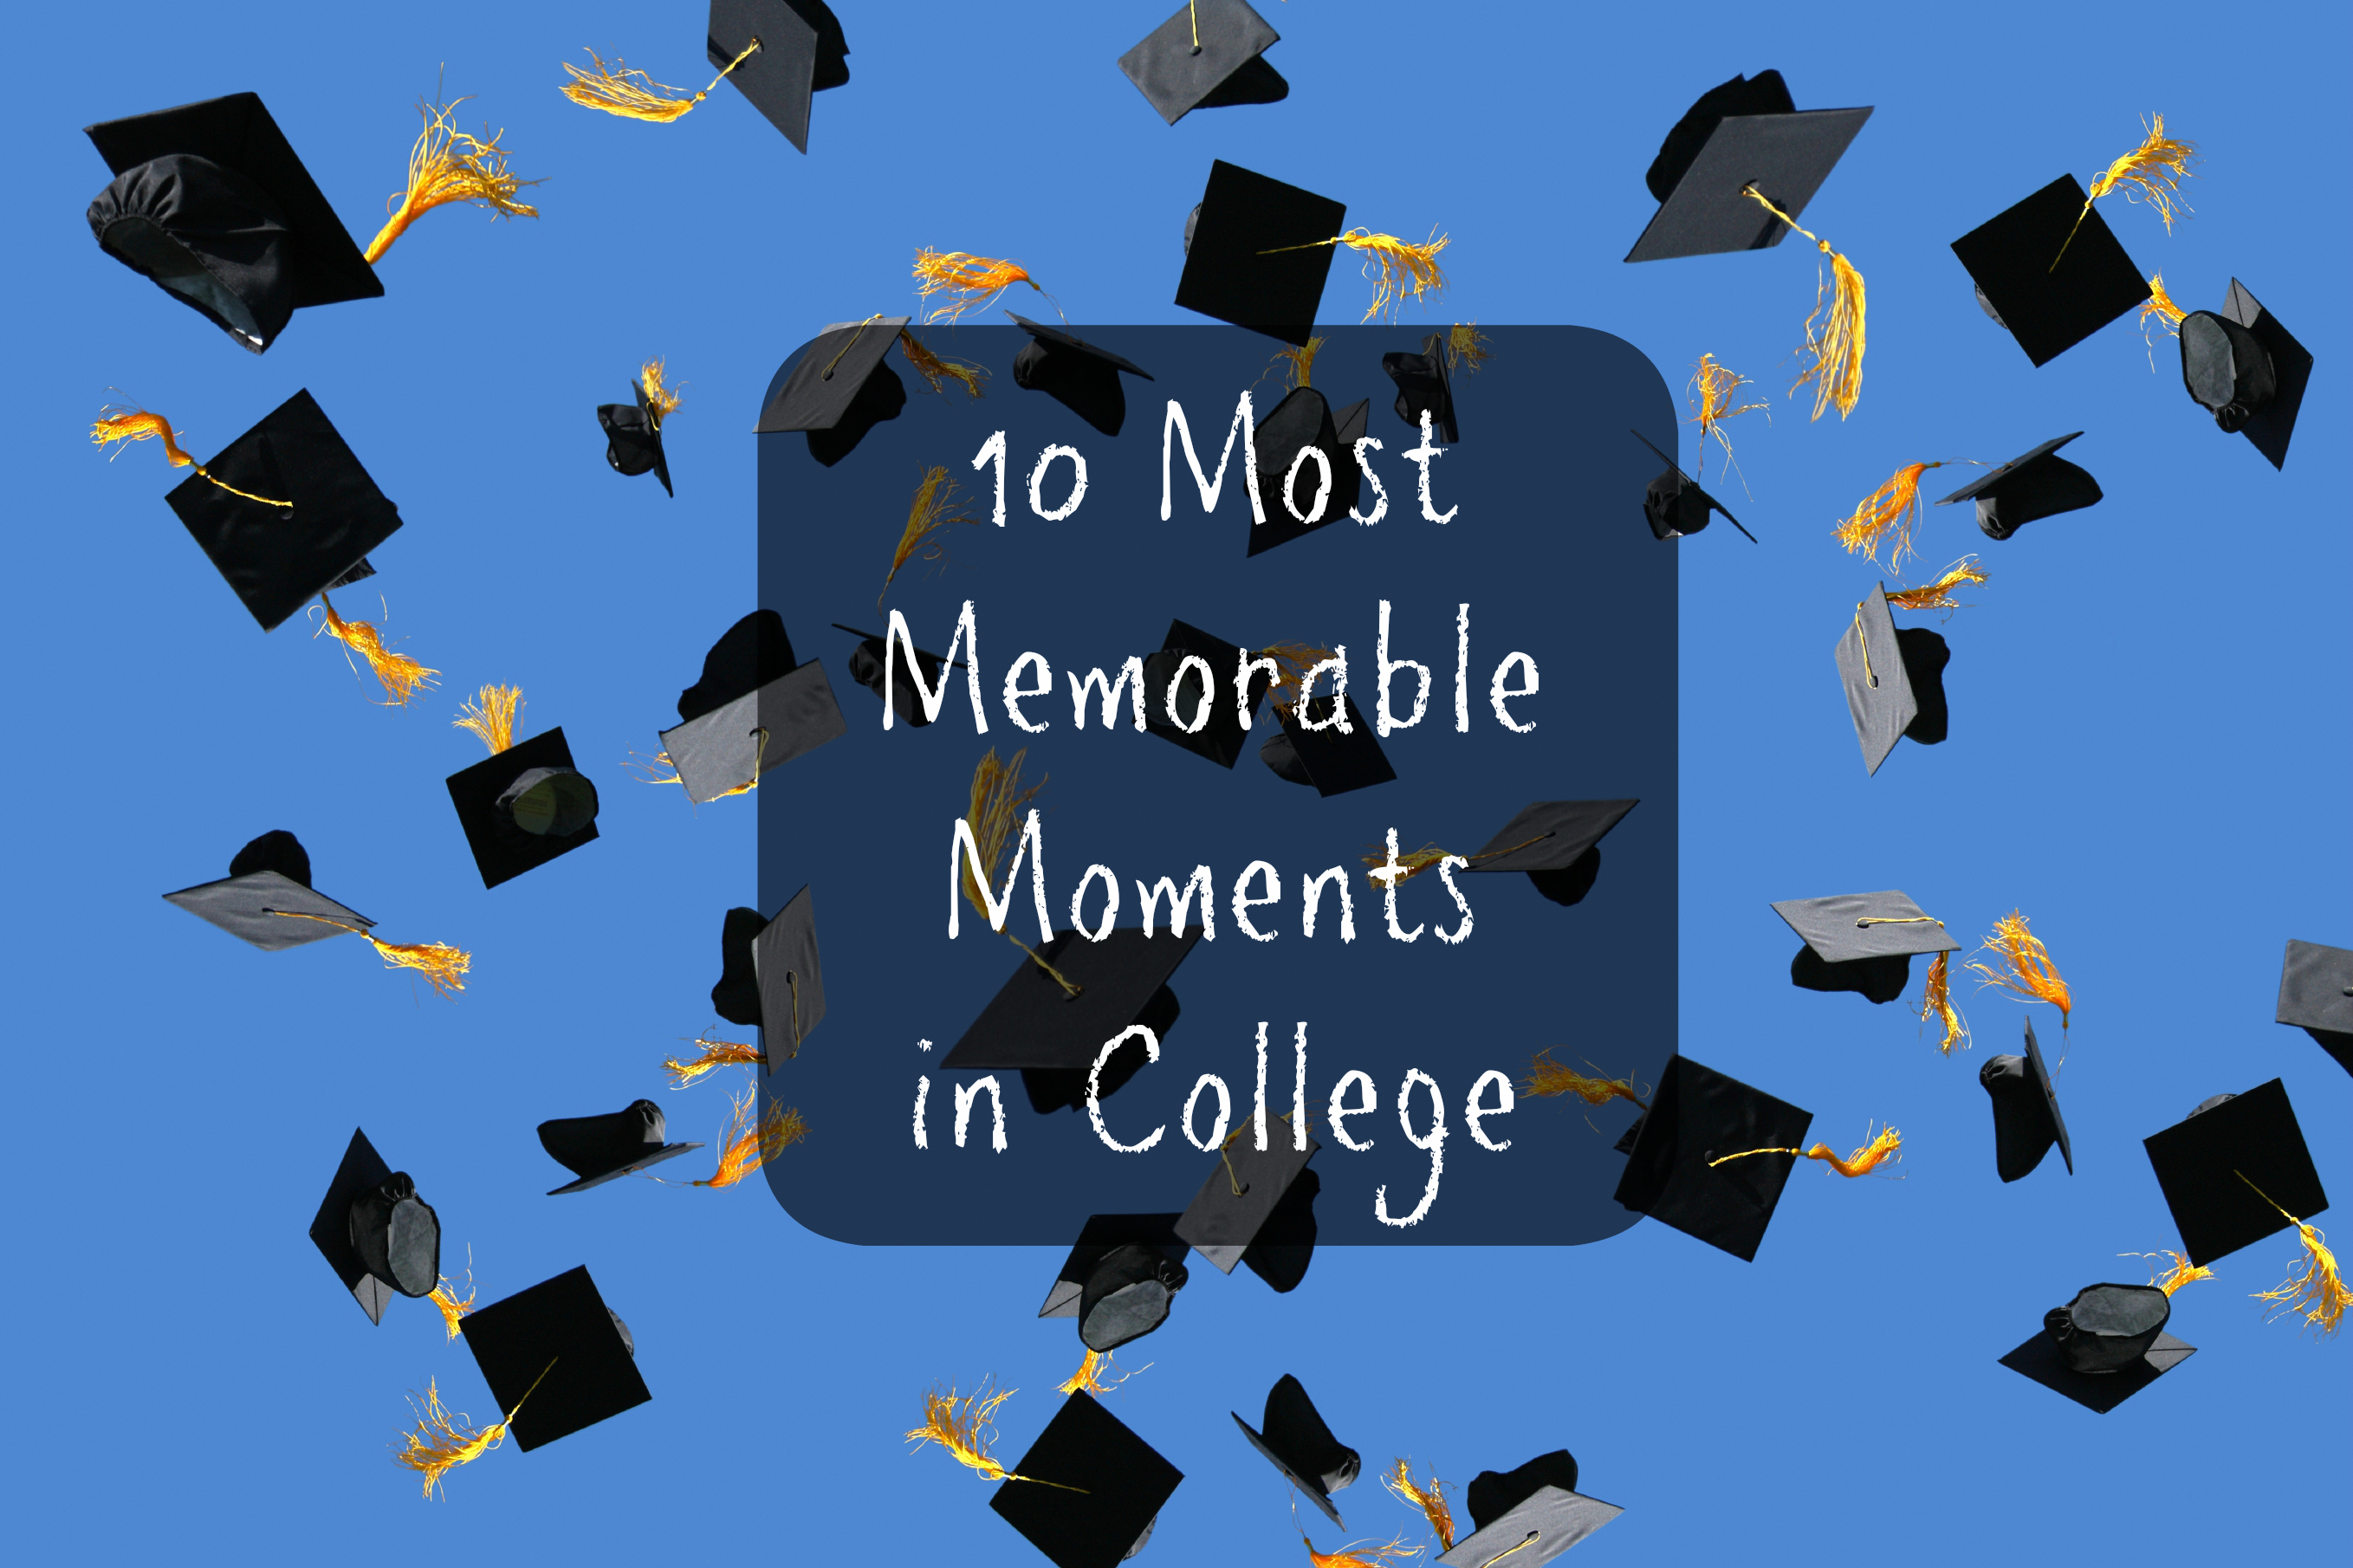 most memorable moments in college throwbackthursday   a deecoded   most memorable moments in college throwbackthursday